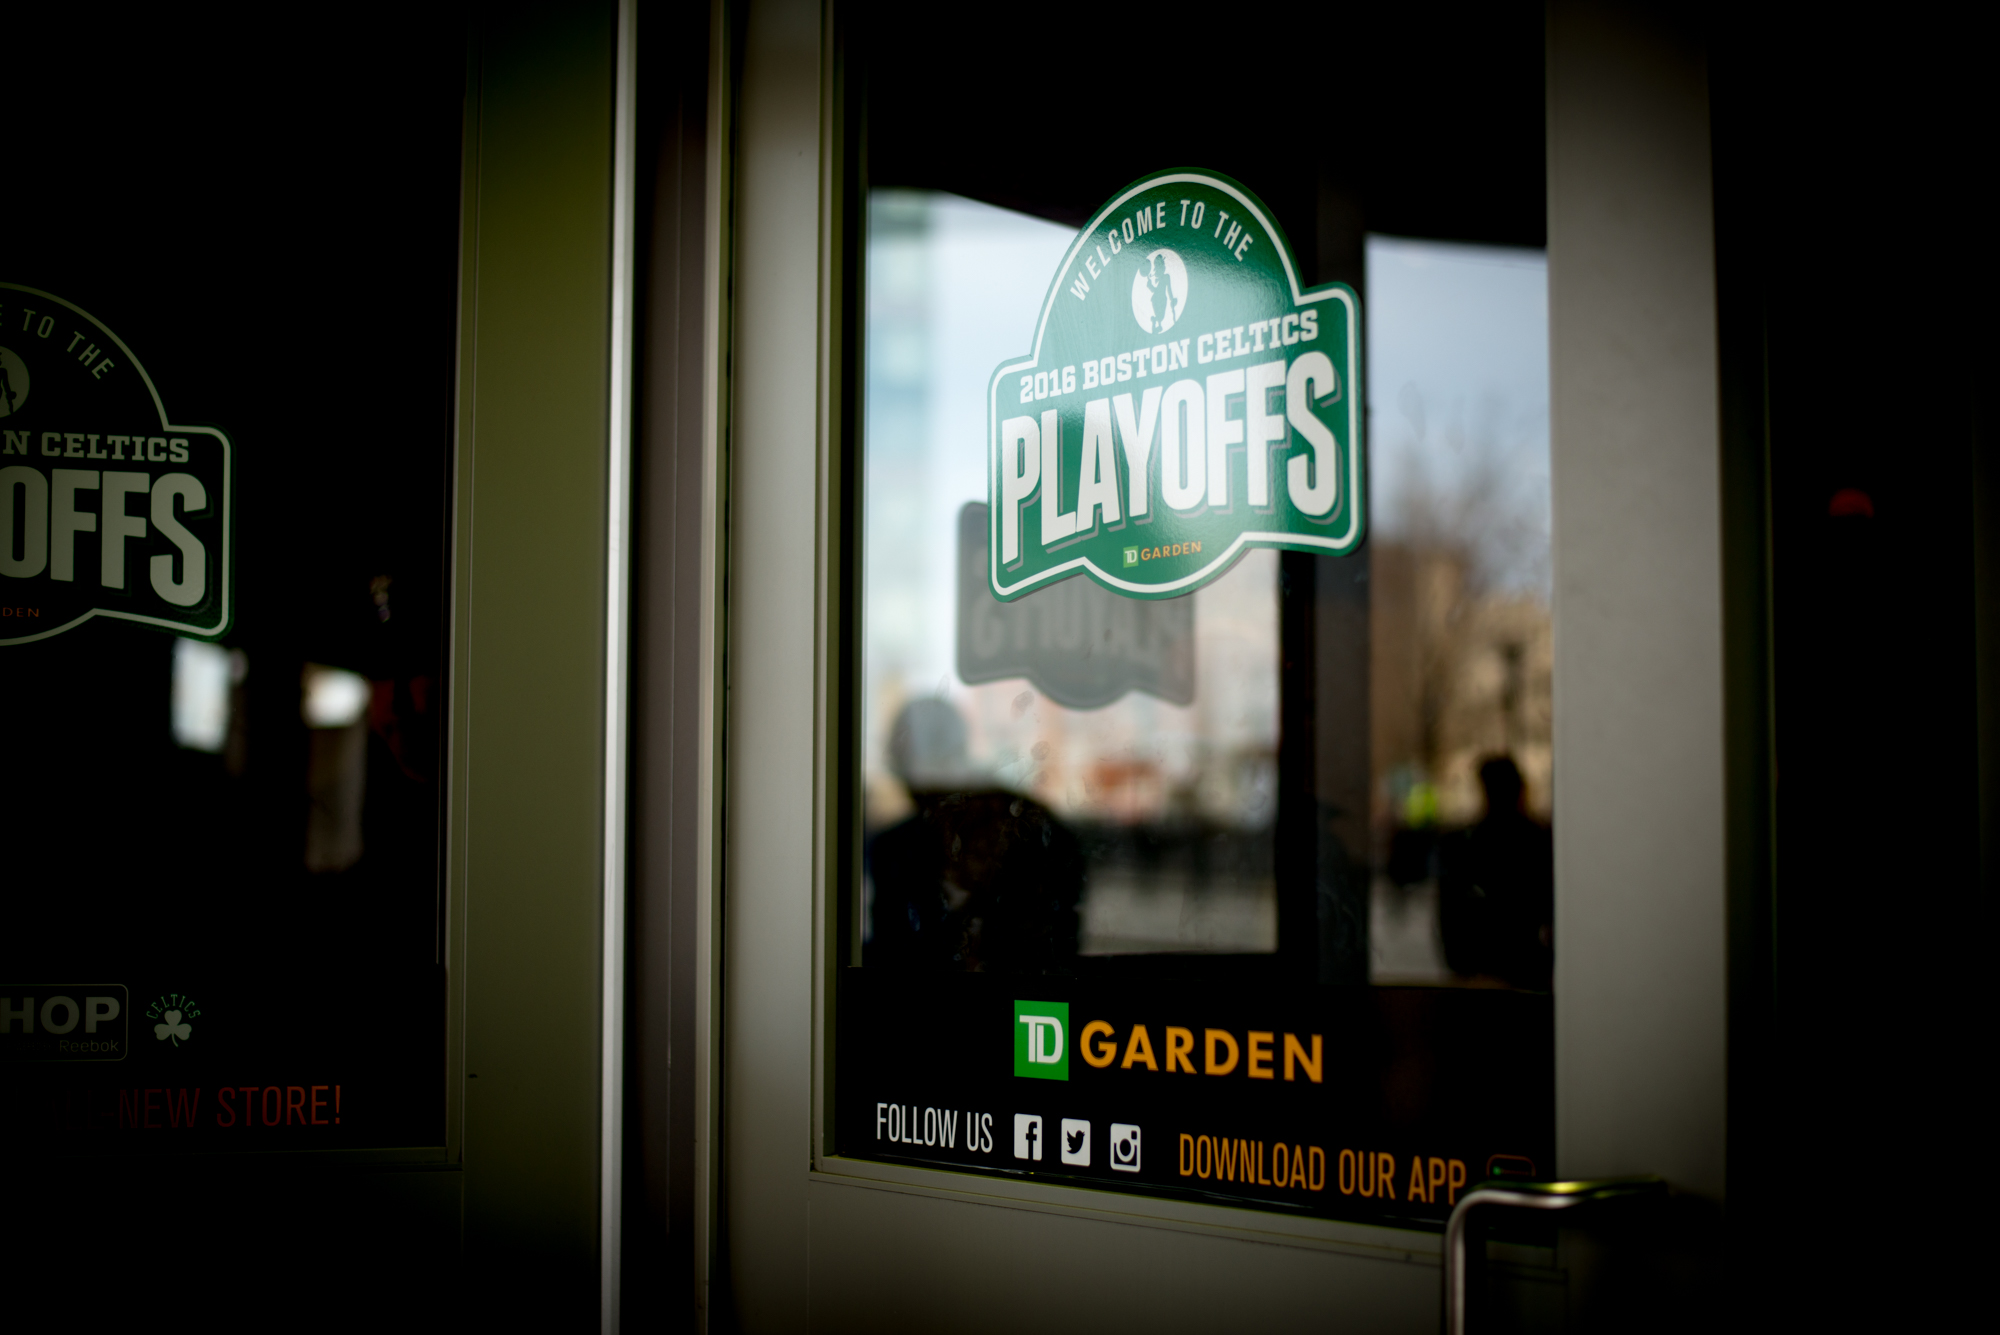 Celtics_Playoff_042916-15.jpg